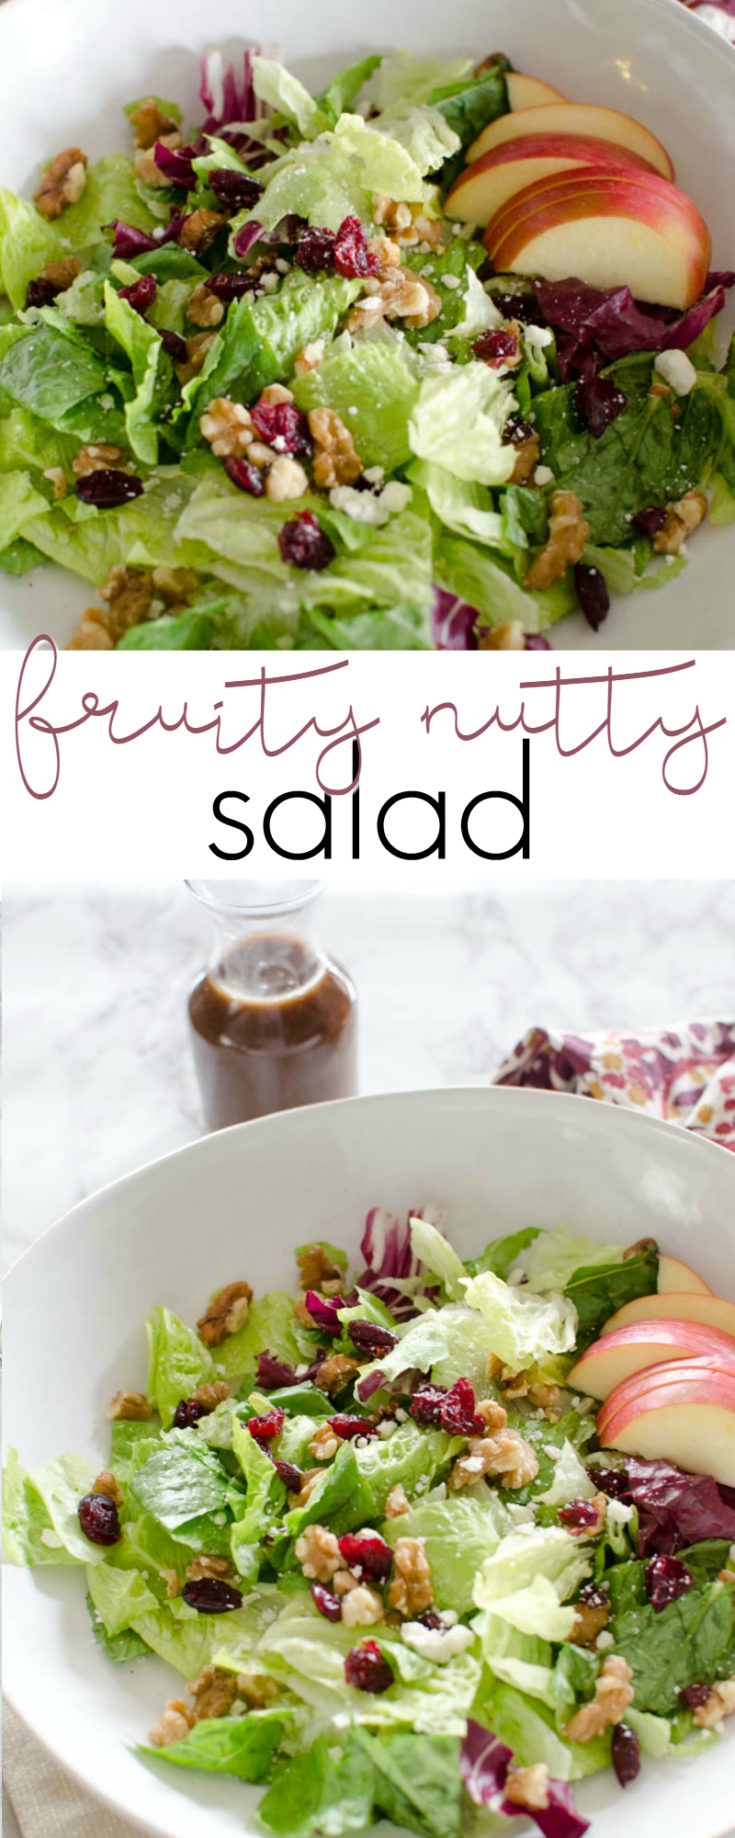 A recipe for a fruit, nut and crumbled cheese salad over mixed greens with balsamic vinaigrette!